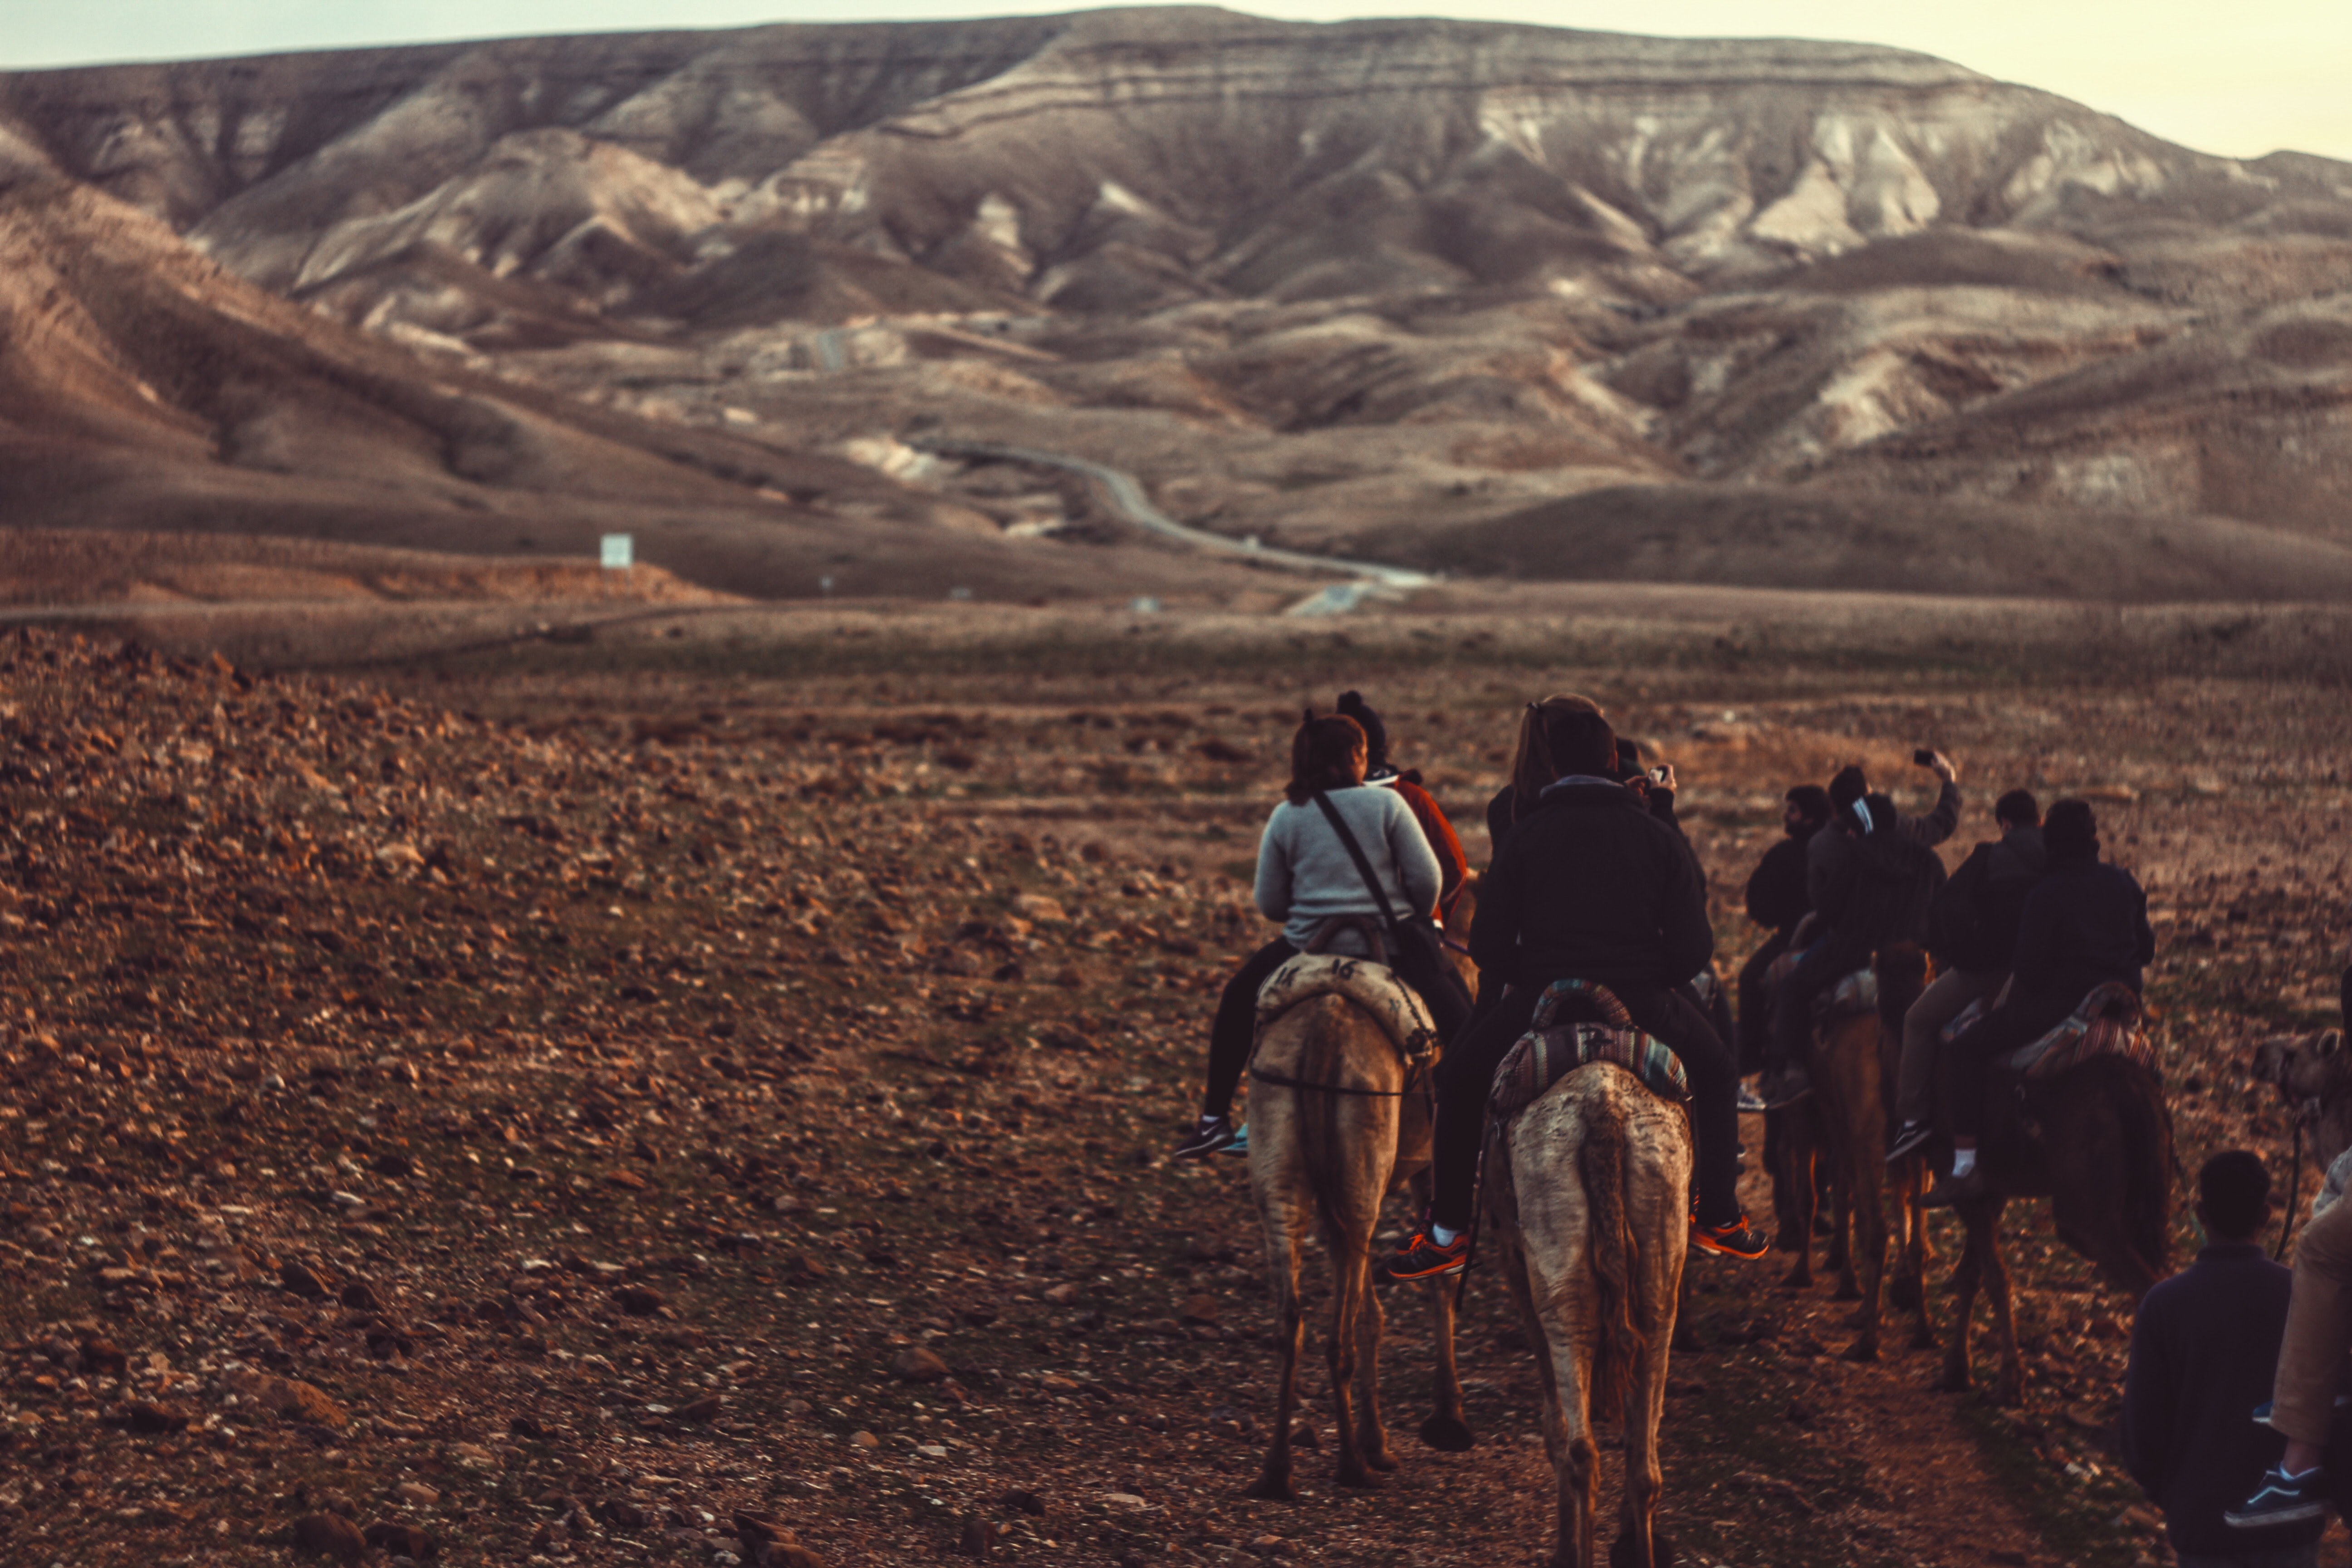 A group of people riding horses through dry wilderness towards a mountain range